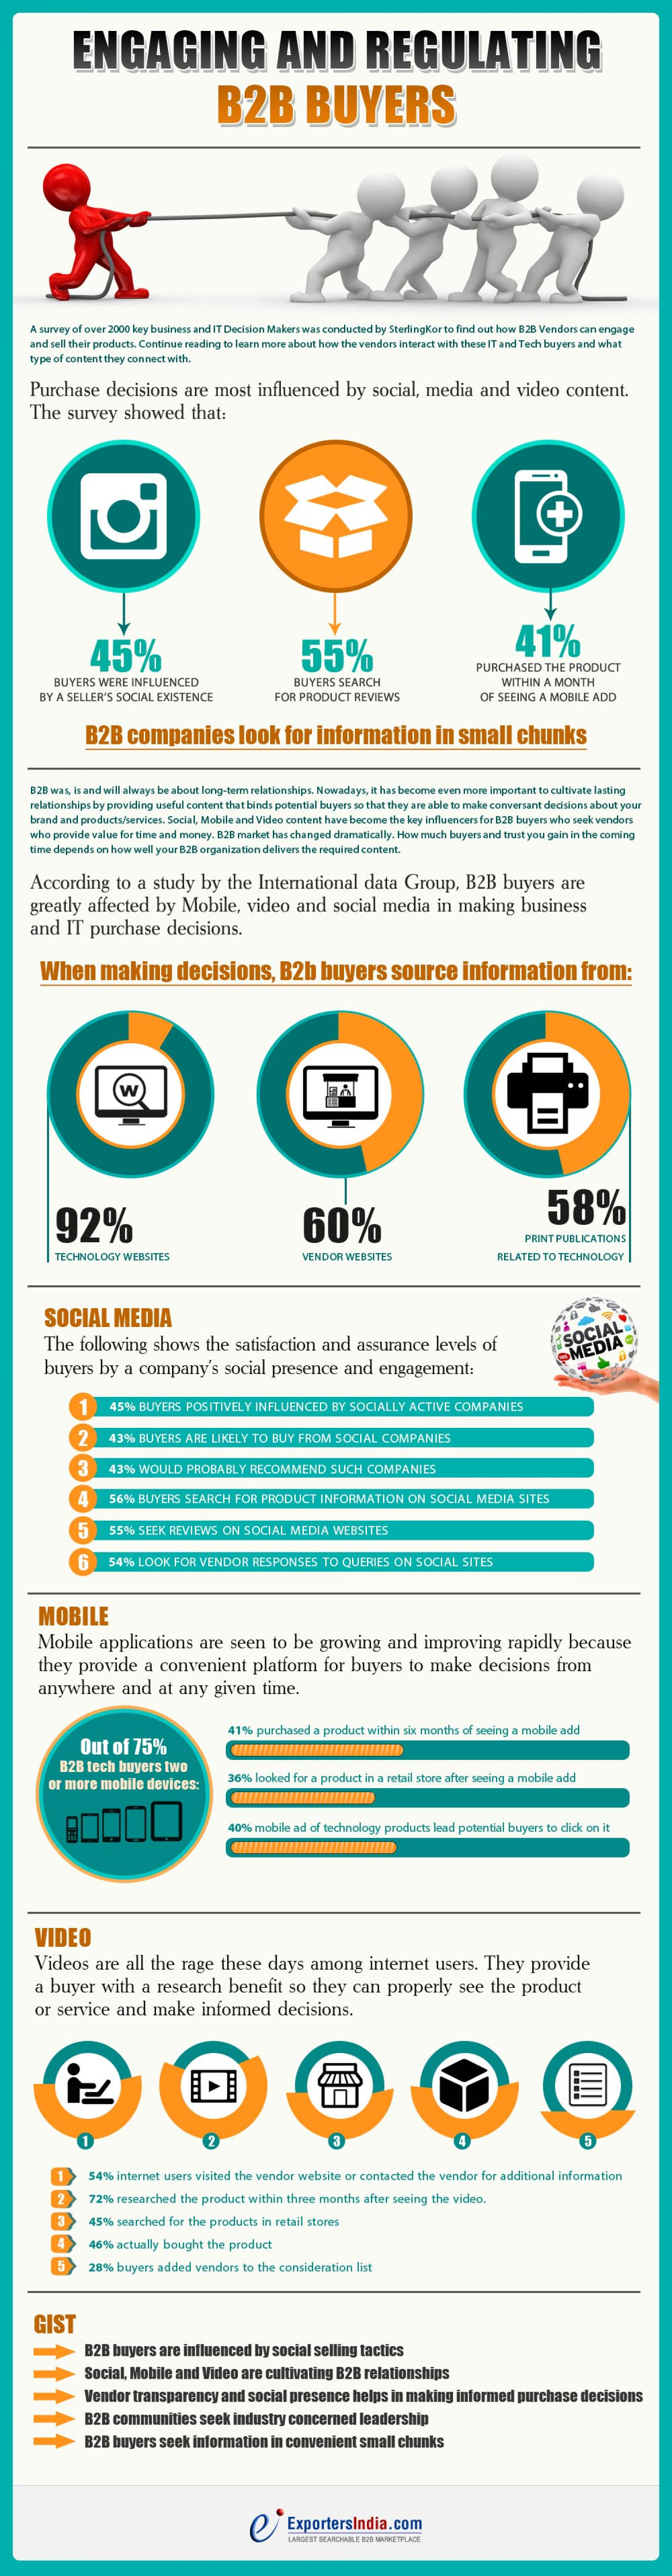 Engaging and Regulating B2b Buyers Infographic